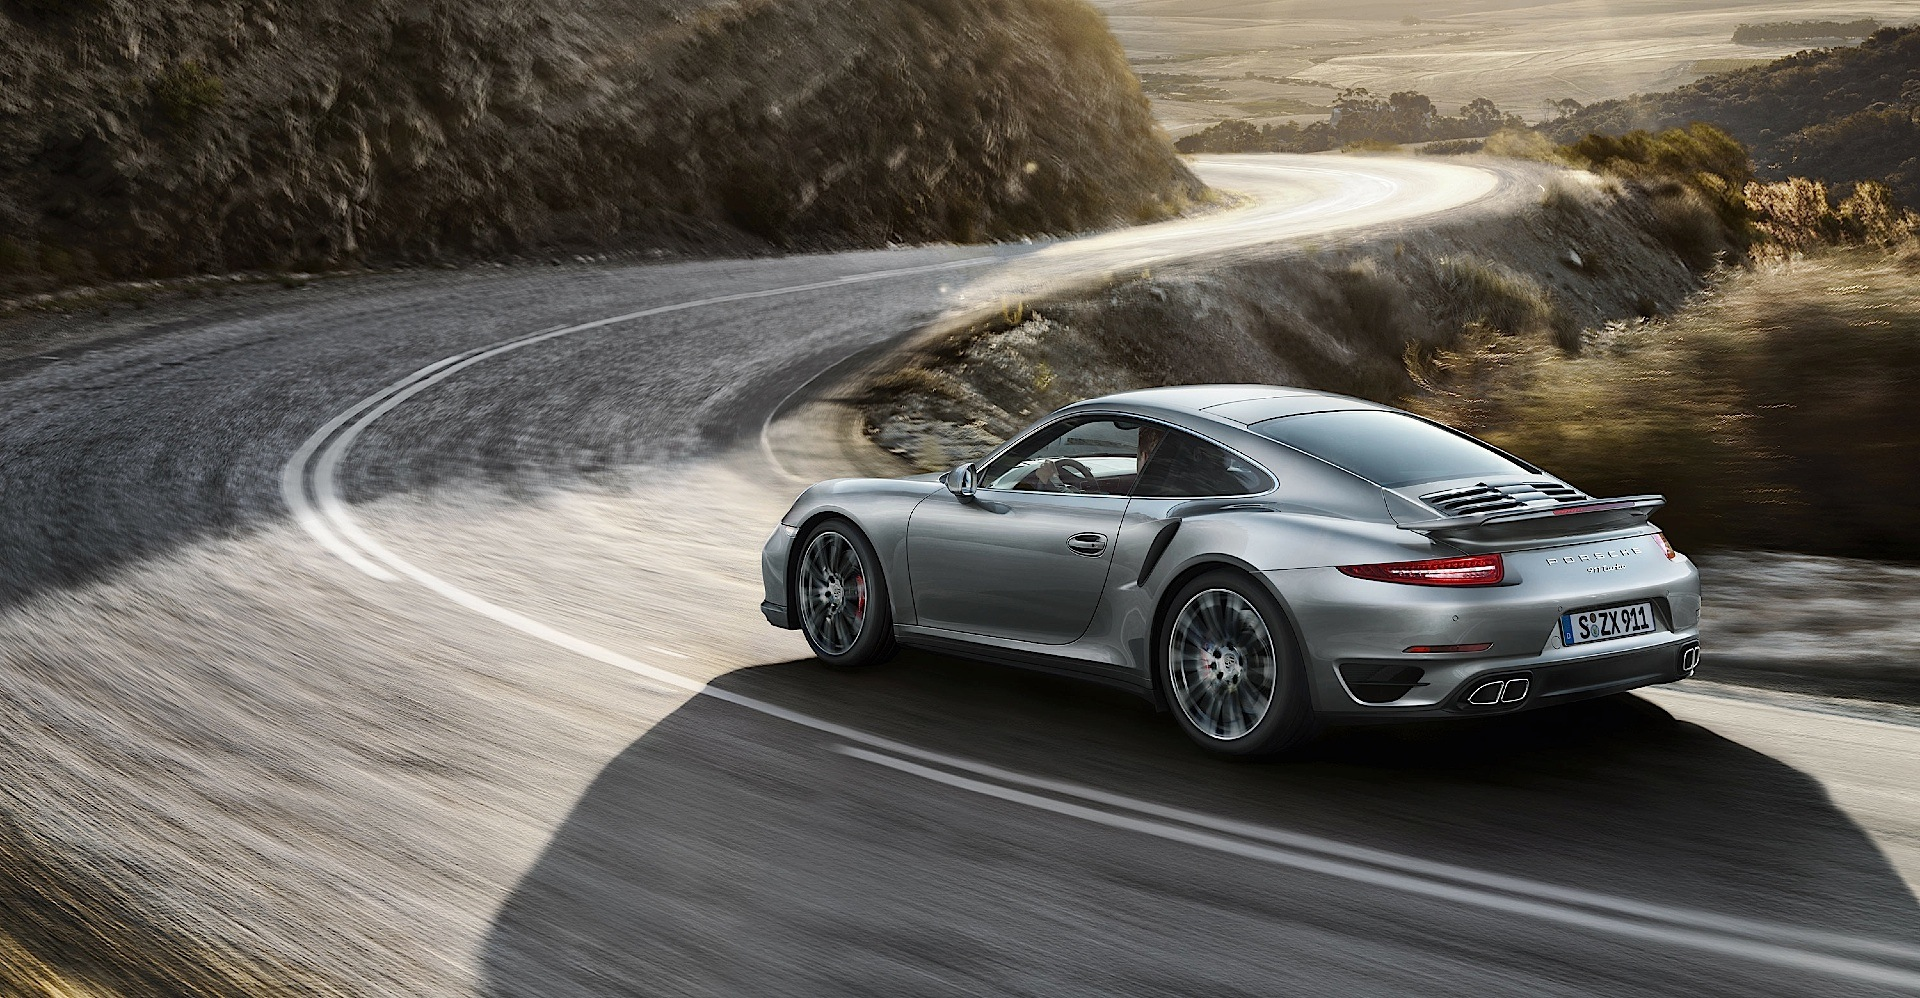 Porsche 911 Turbo 991 Specs Amp Photos 2013 2014 2015